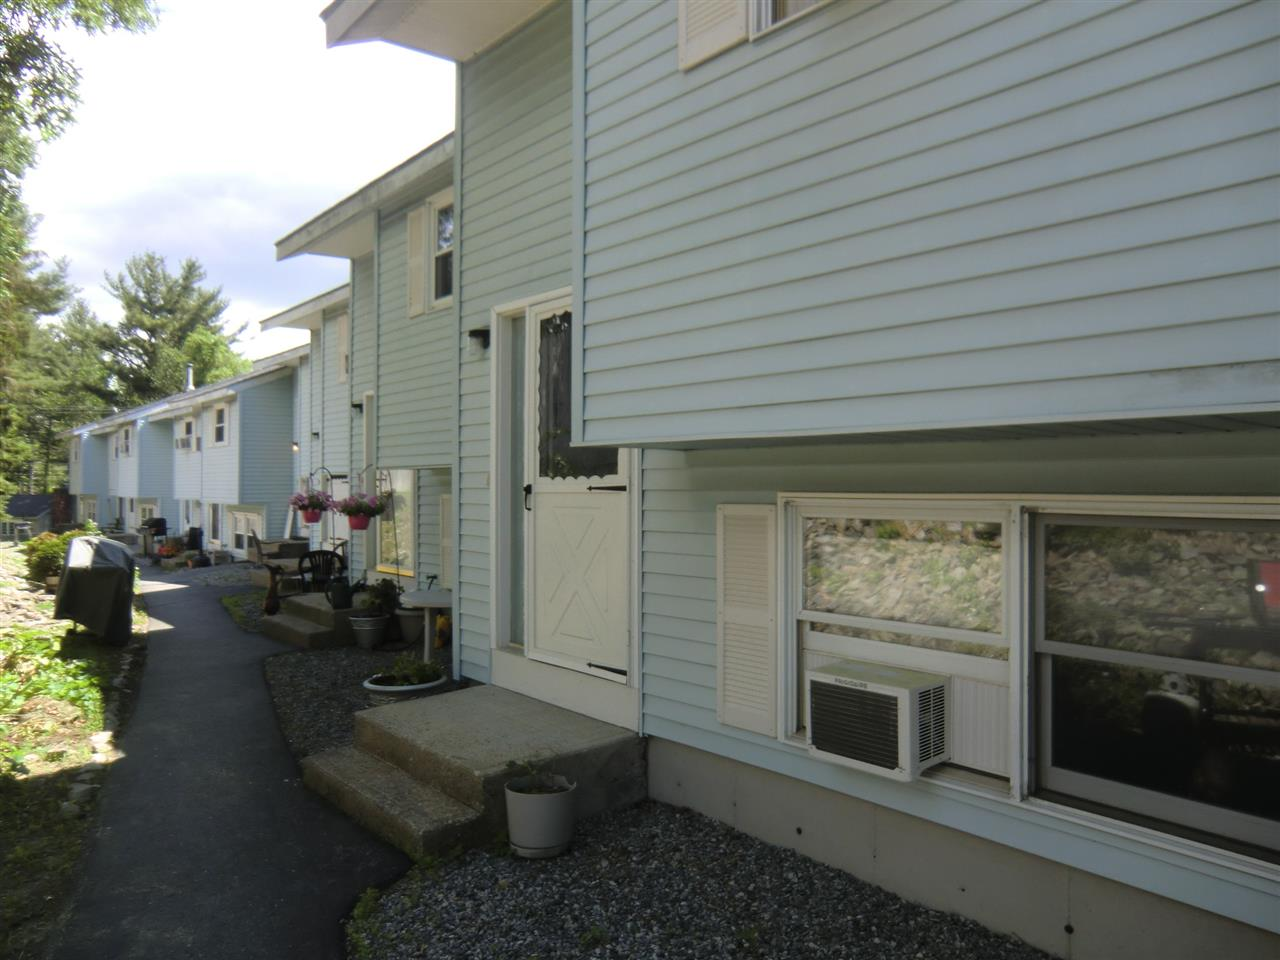 image of Manchester NH Condo | sq.ft. 1642